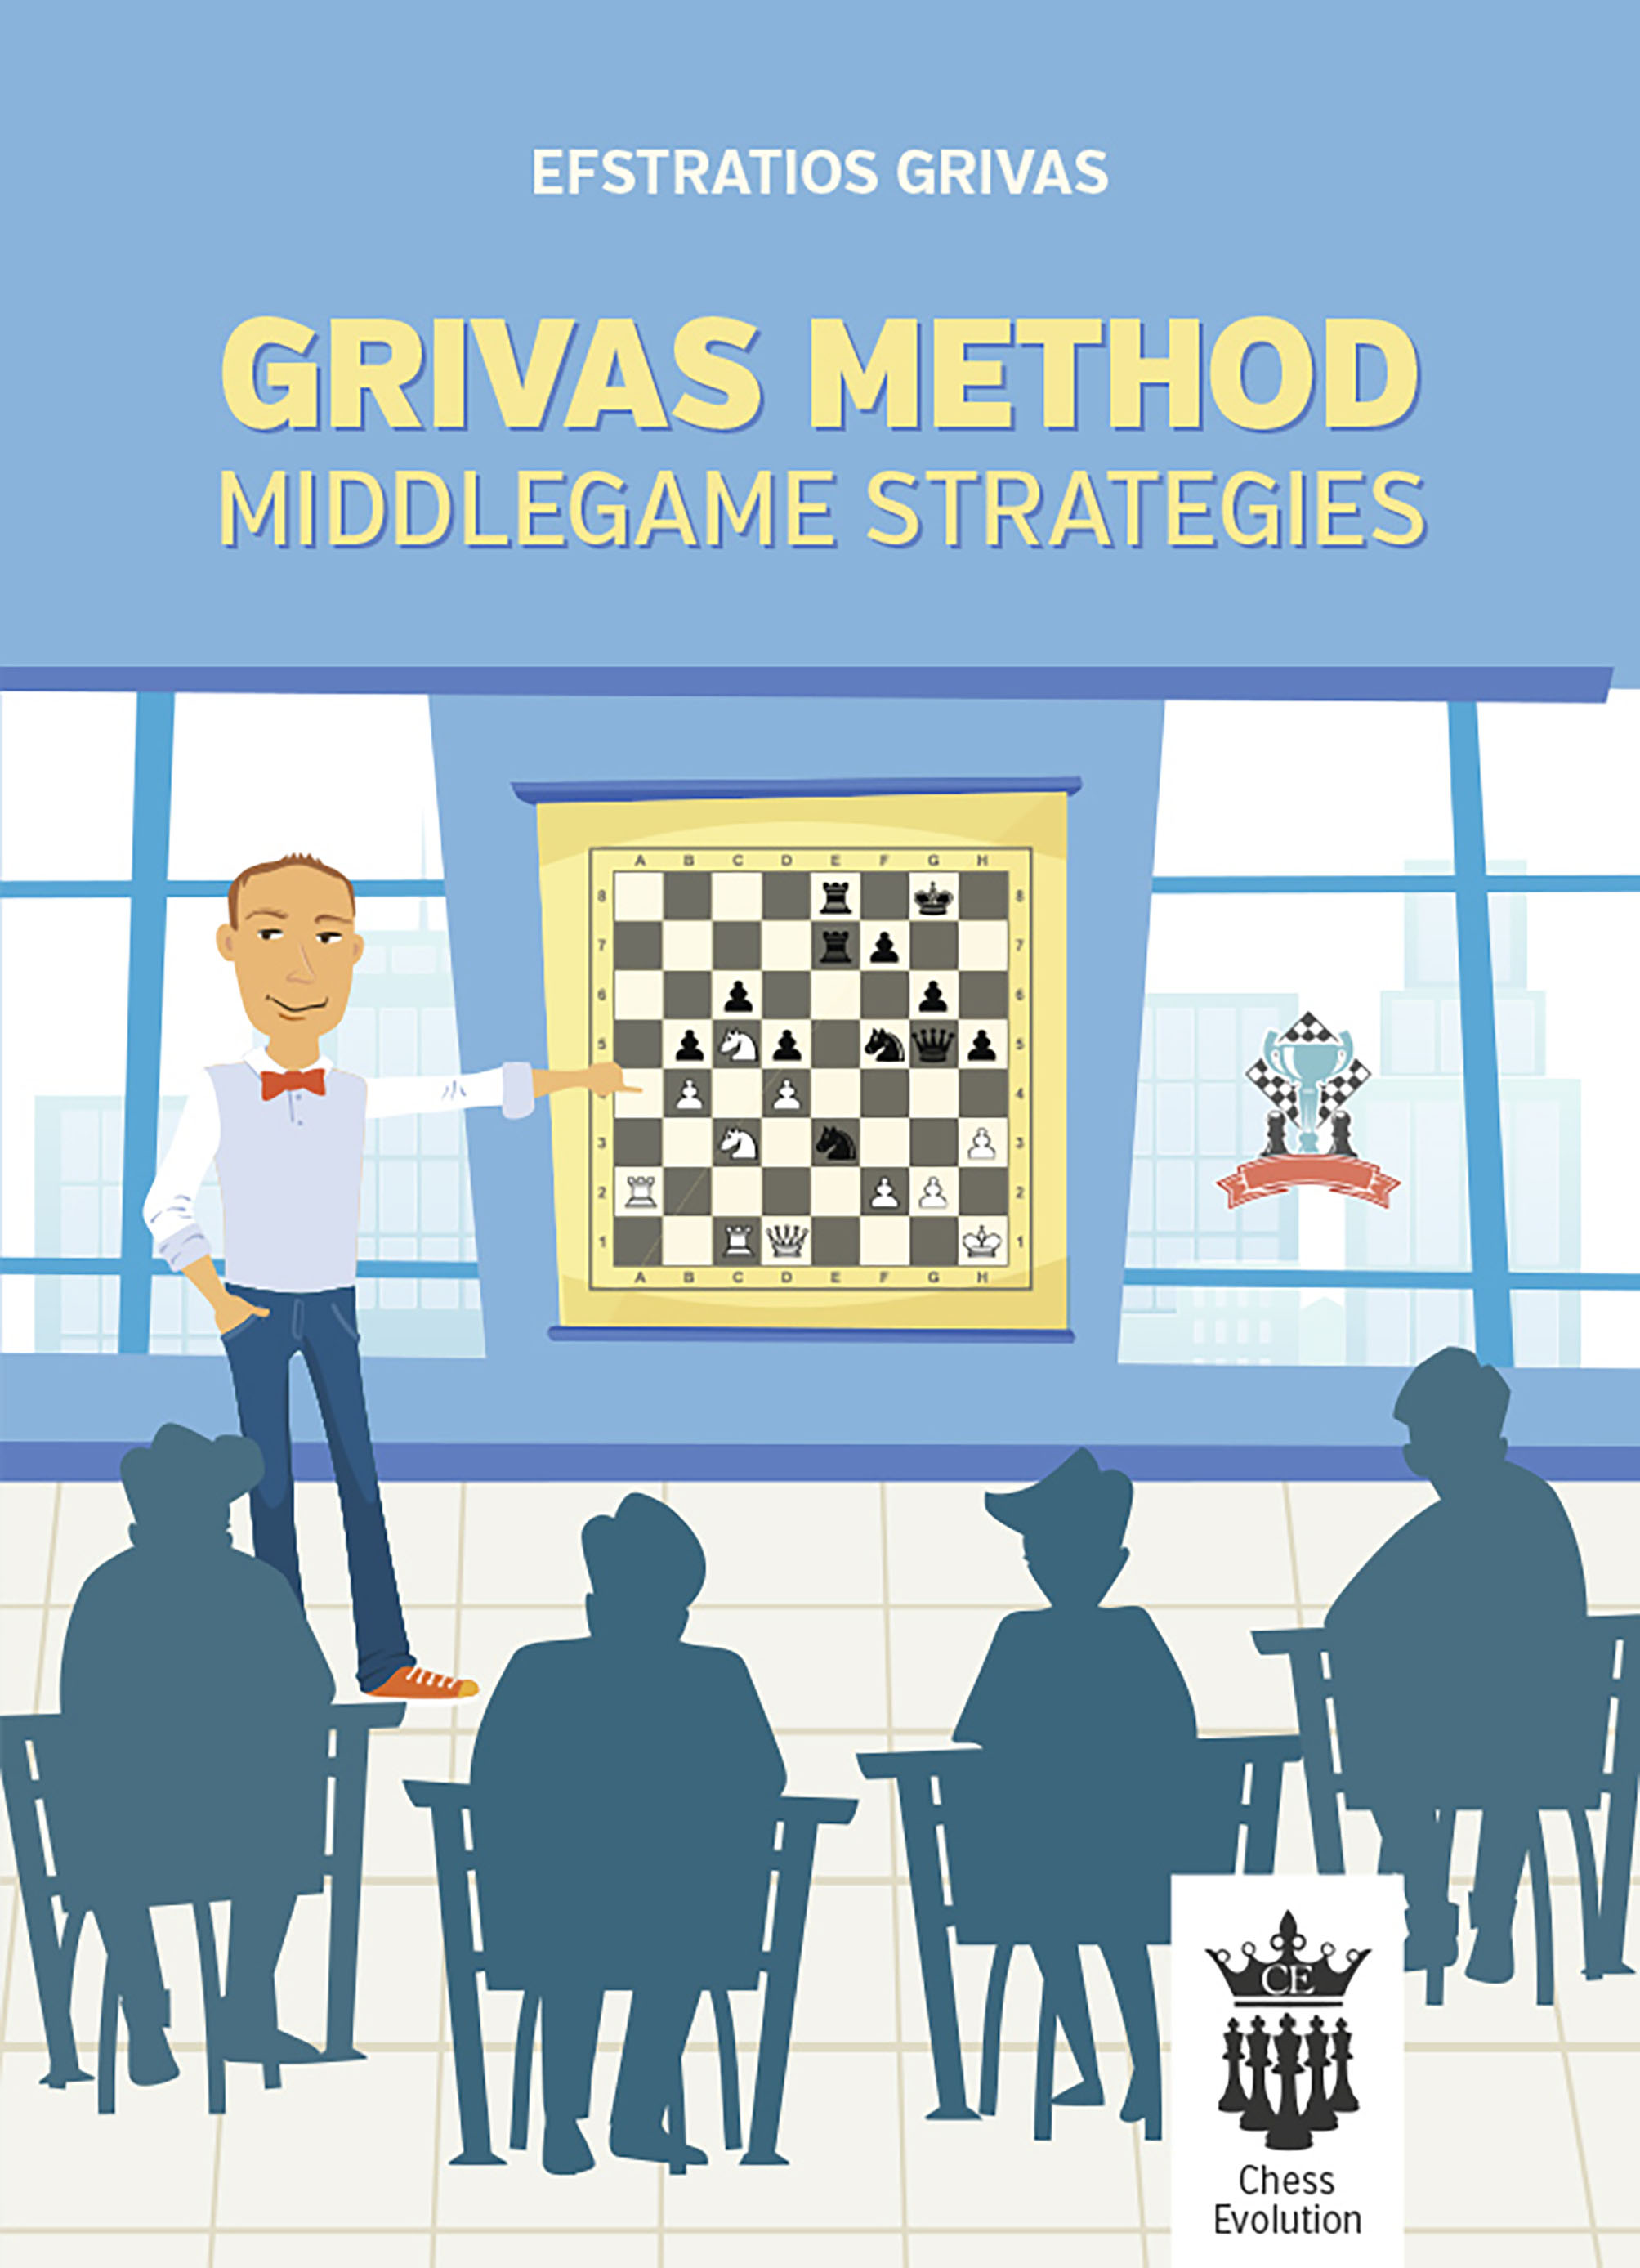 The Grivas Method